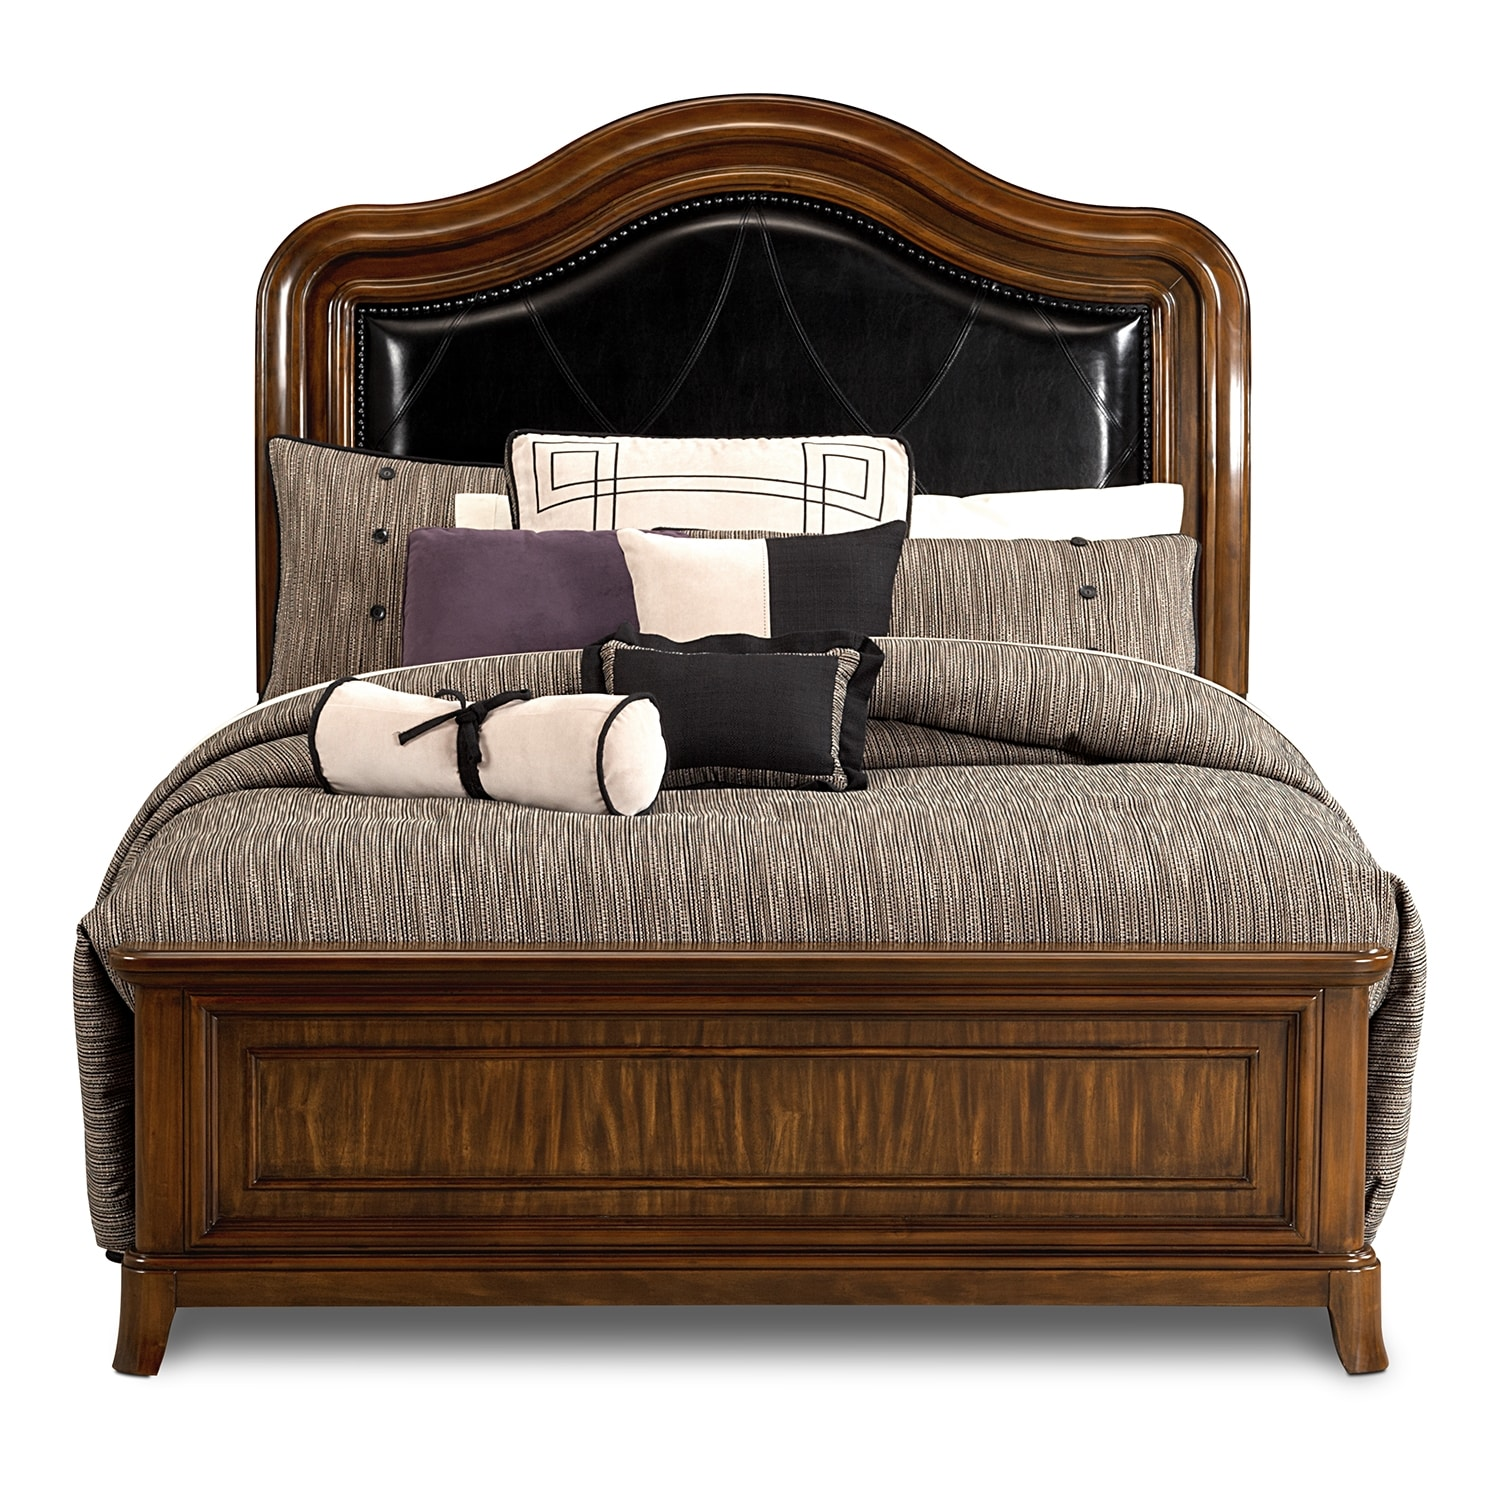 Kingston bedroom queen bed value city furniture for Furniture kingston